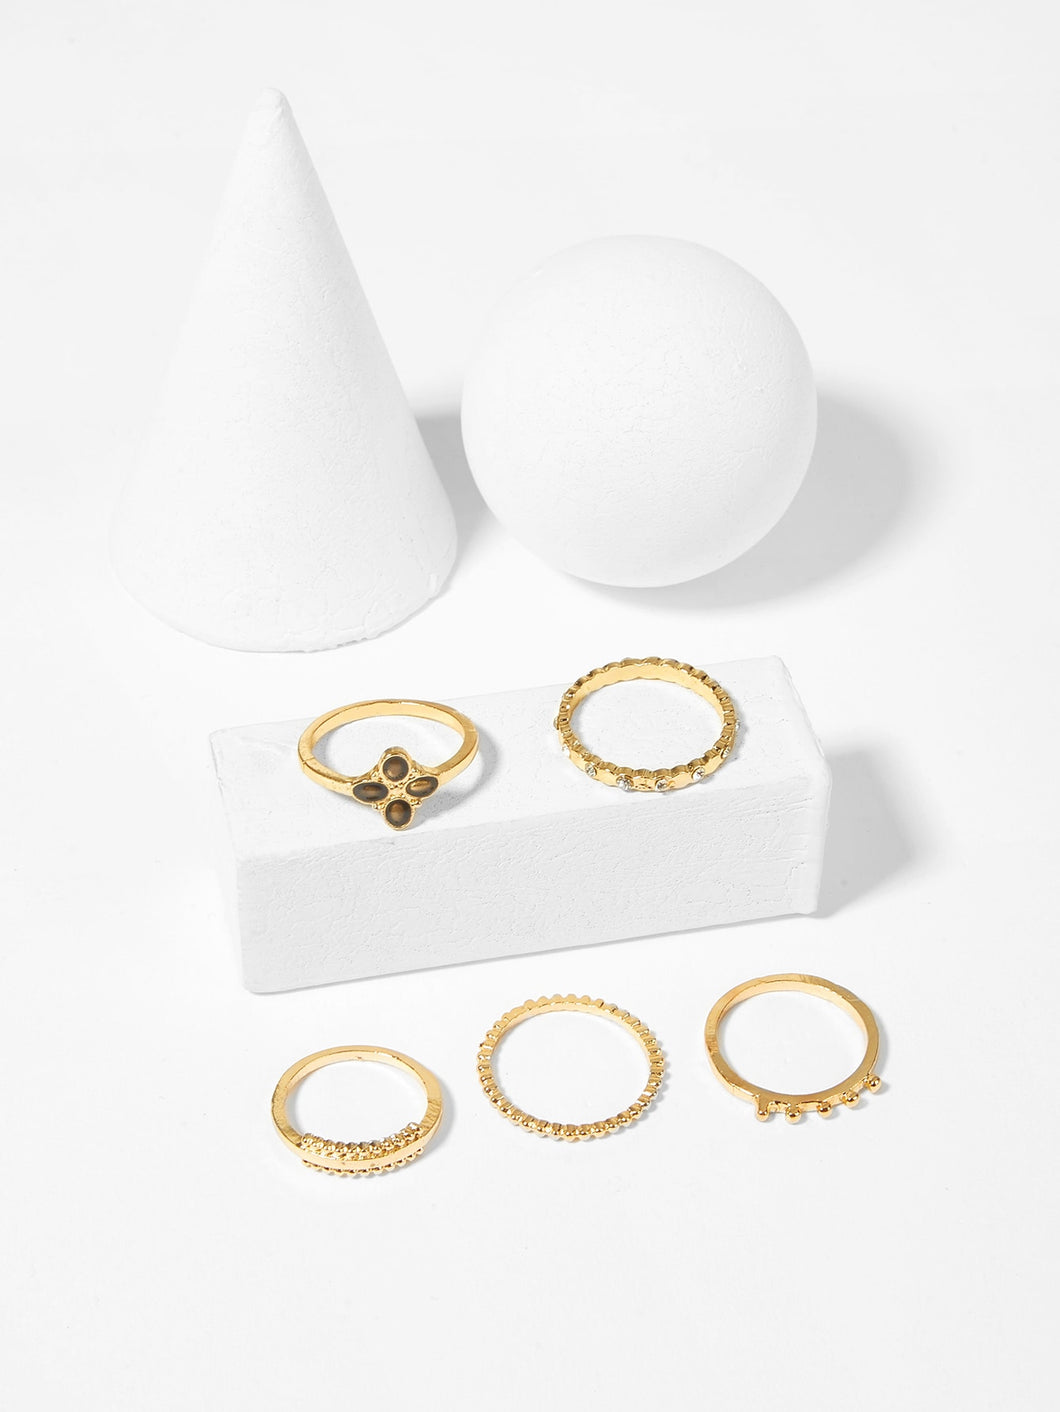 Didi Royale  | Accessories | Ayana Textured Gemstone Ring Set